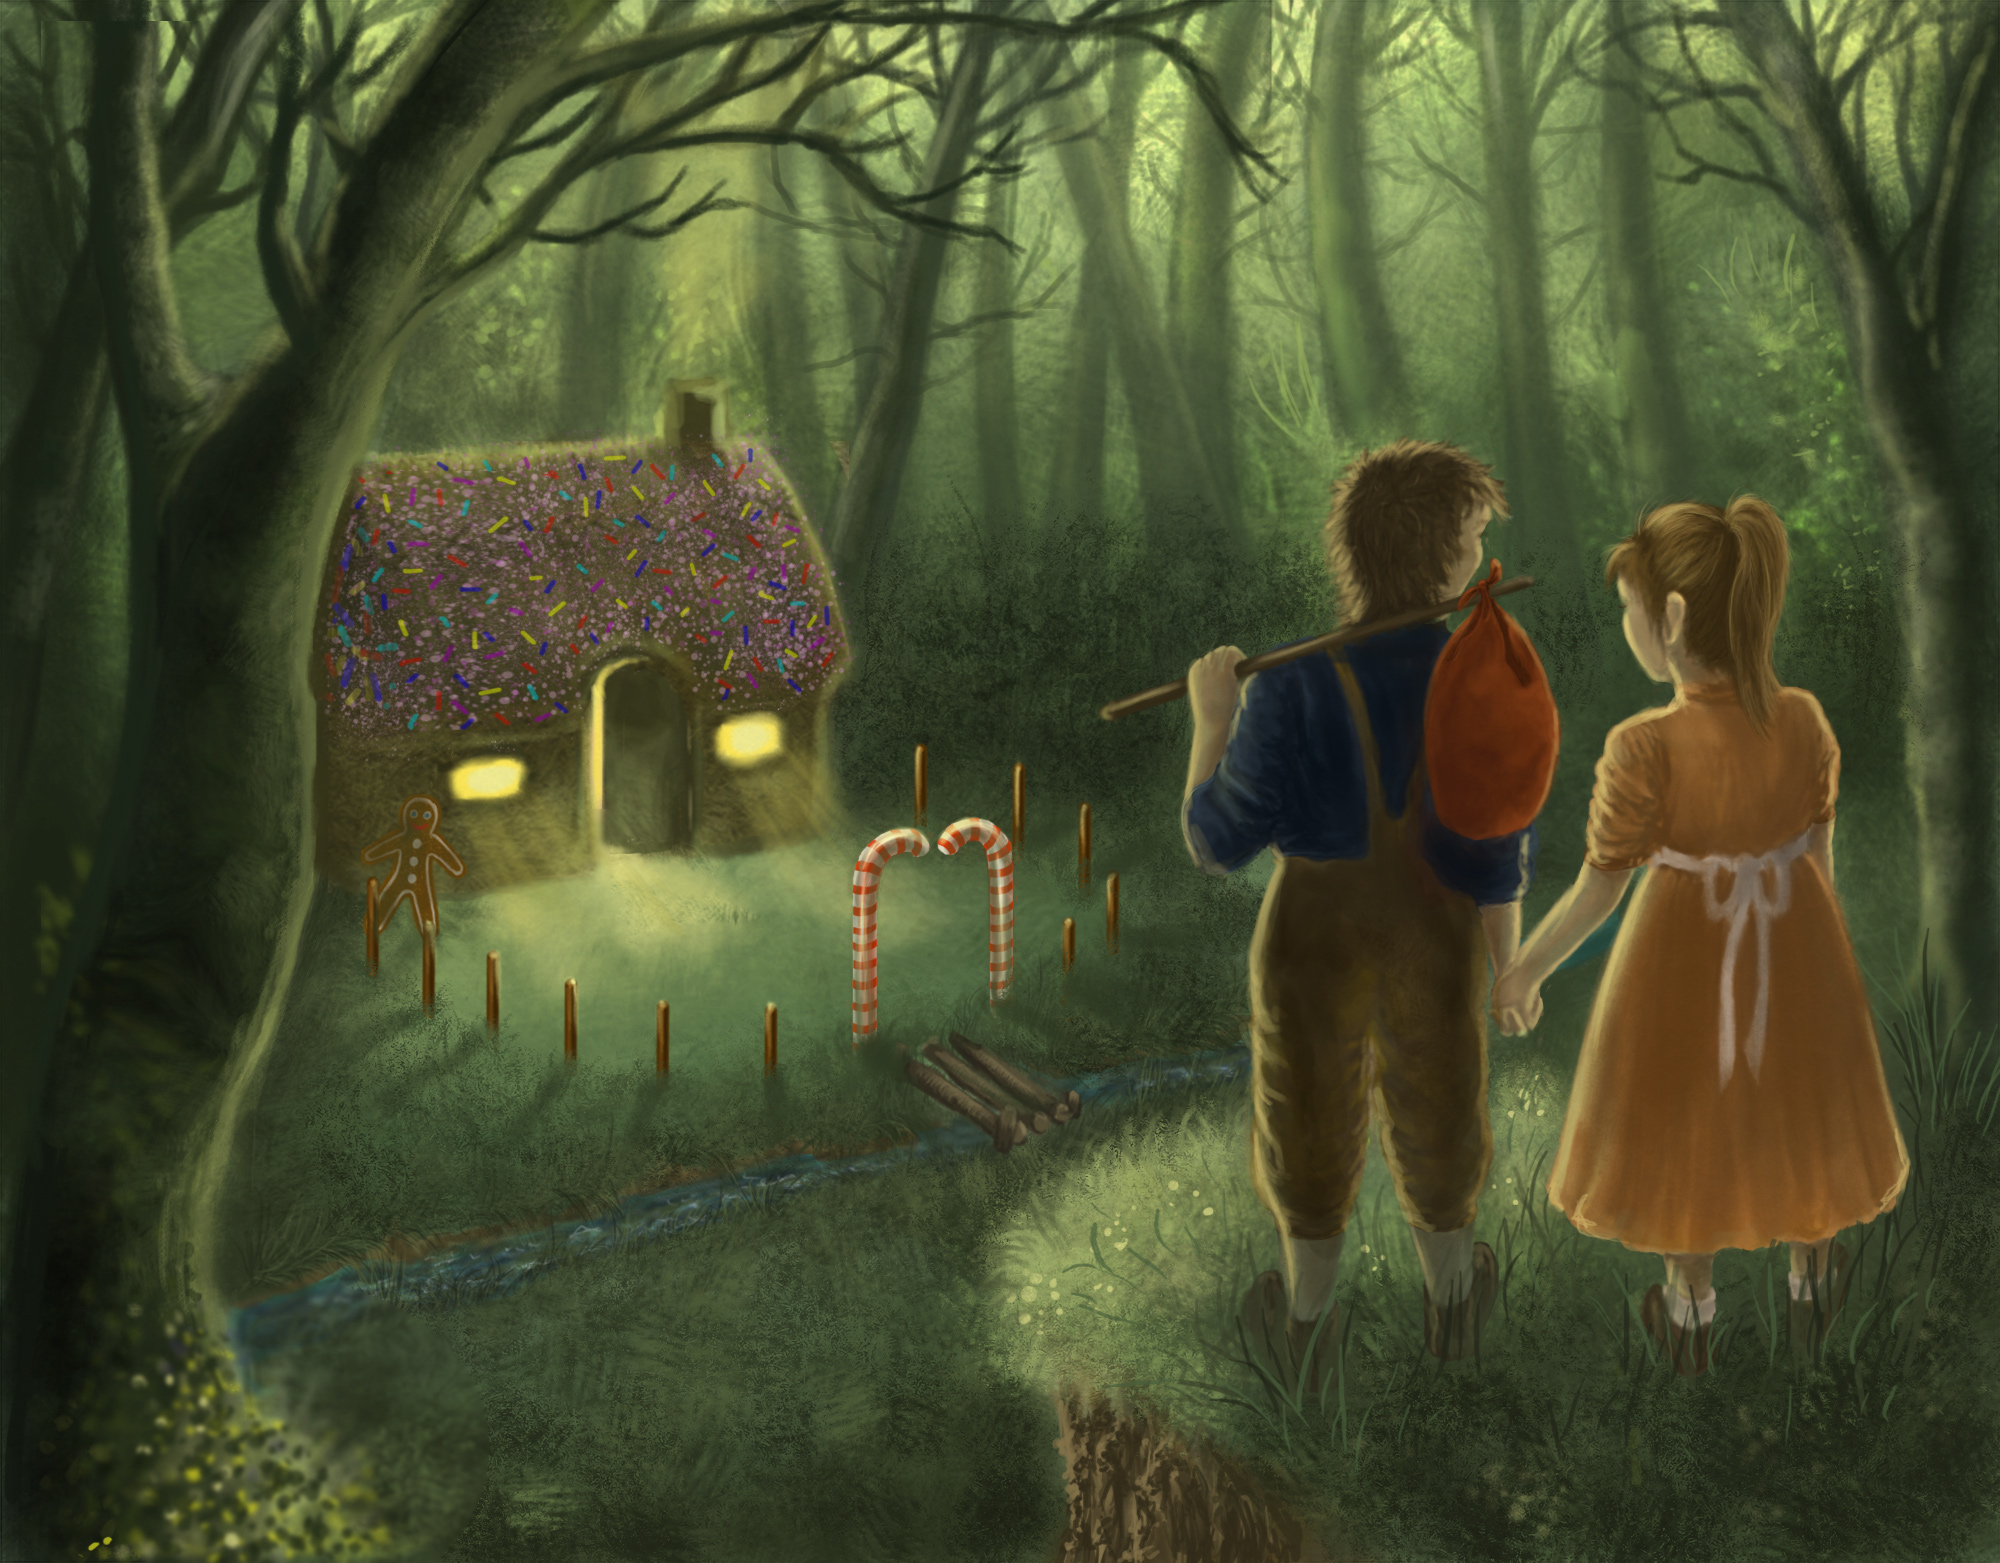 an analysis of the characters in the hansel and gretel a fairy tale by wilhelm grimm The theme of hansel and gretel addresses survival and resilience in a world of food scarcity and deprivation evil is introduced as one strategy of survival, but it is overcome by the clever children the sin of gluttony in the guise of the witch and the gingerbread house is also acknowledged.